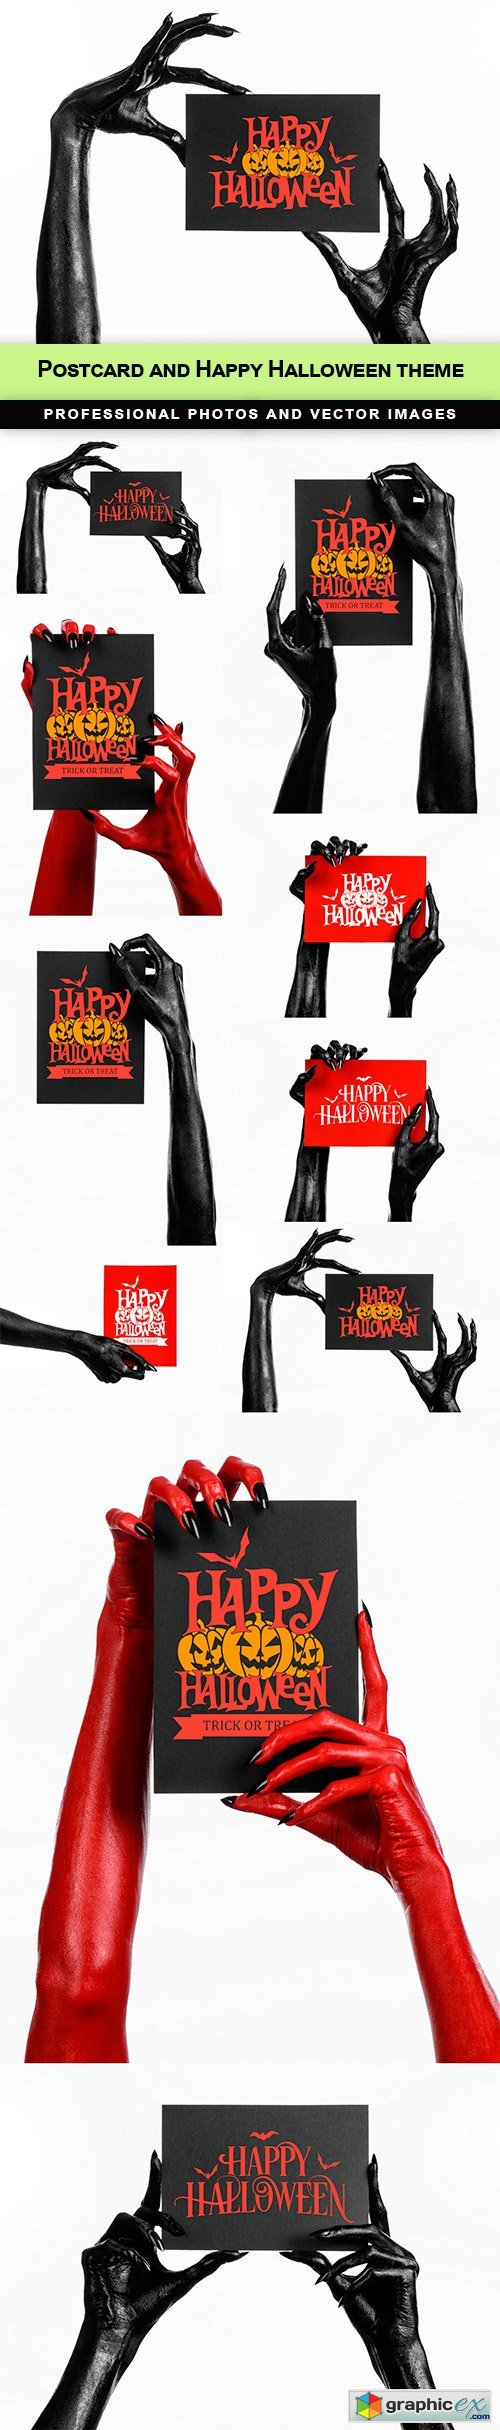 Postcard and Happy Halloween theme - 10 UHQ JPEG